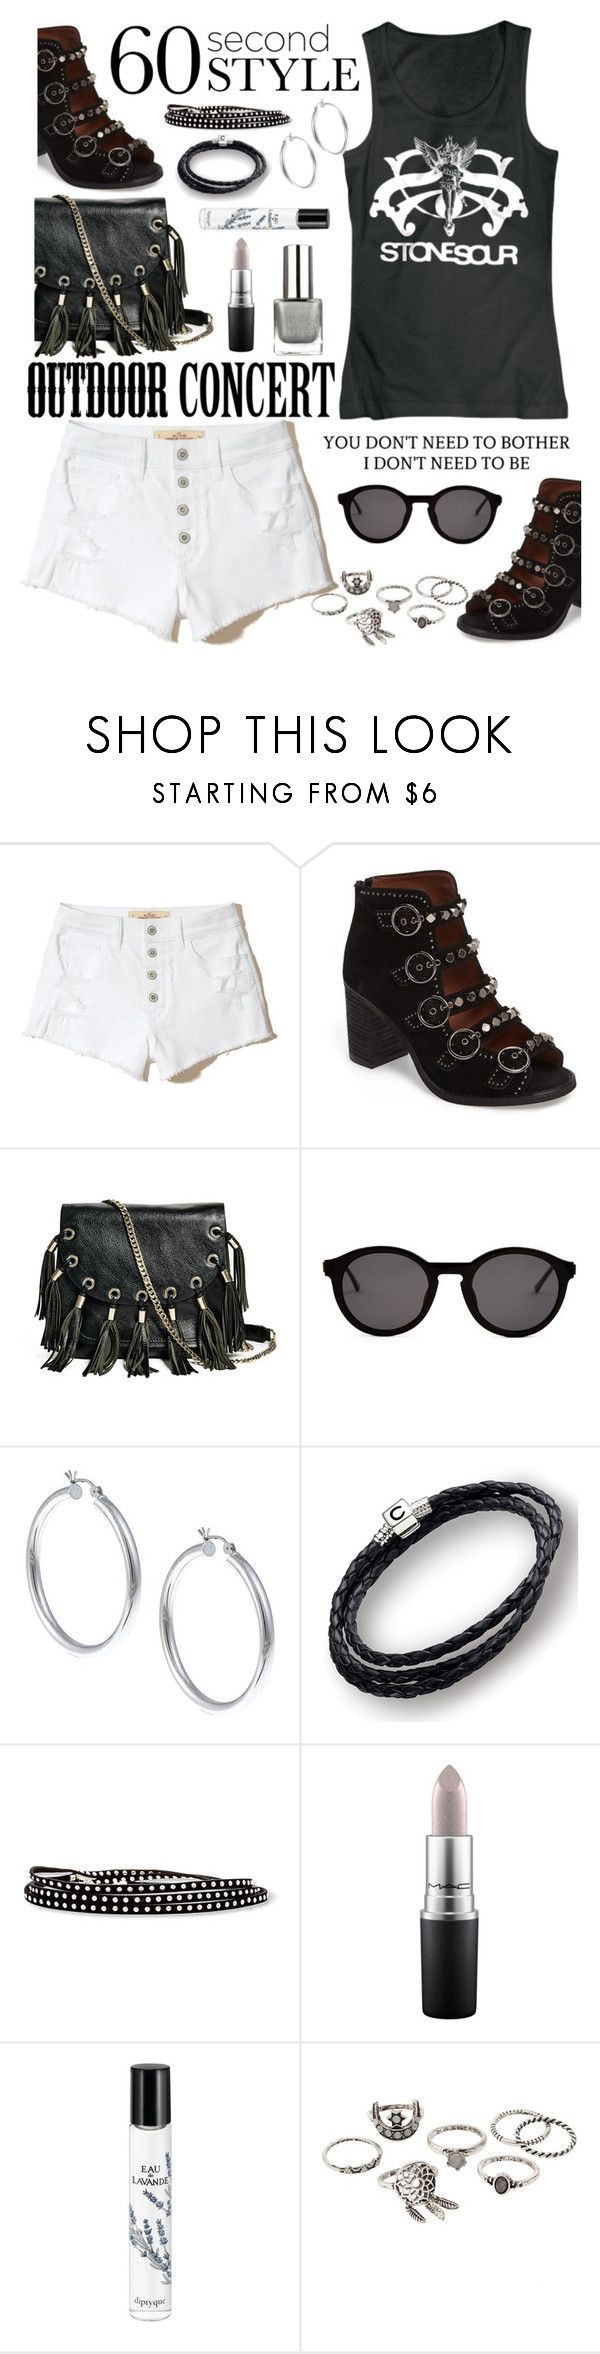 """60-Second Style: Outdoor Concert"" by hubunch ❤ liked on Polyvore featuring Hollister Co., Jeffrey Campbell, GUESS by Marciano, Thierry Lasry, Sterling Essentials, Chamilia, Steve Madden, MAC Cosmetics, Diptyque and Charlotte Russe"